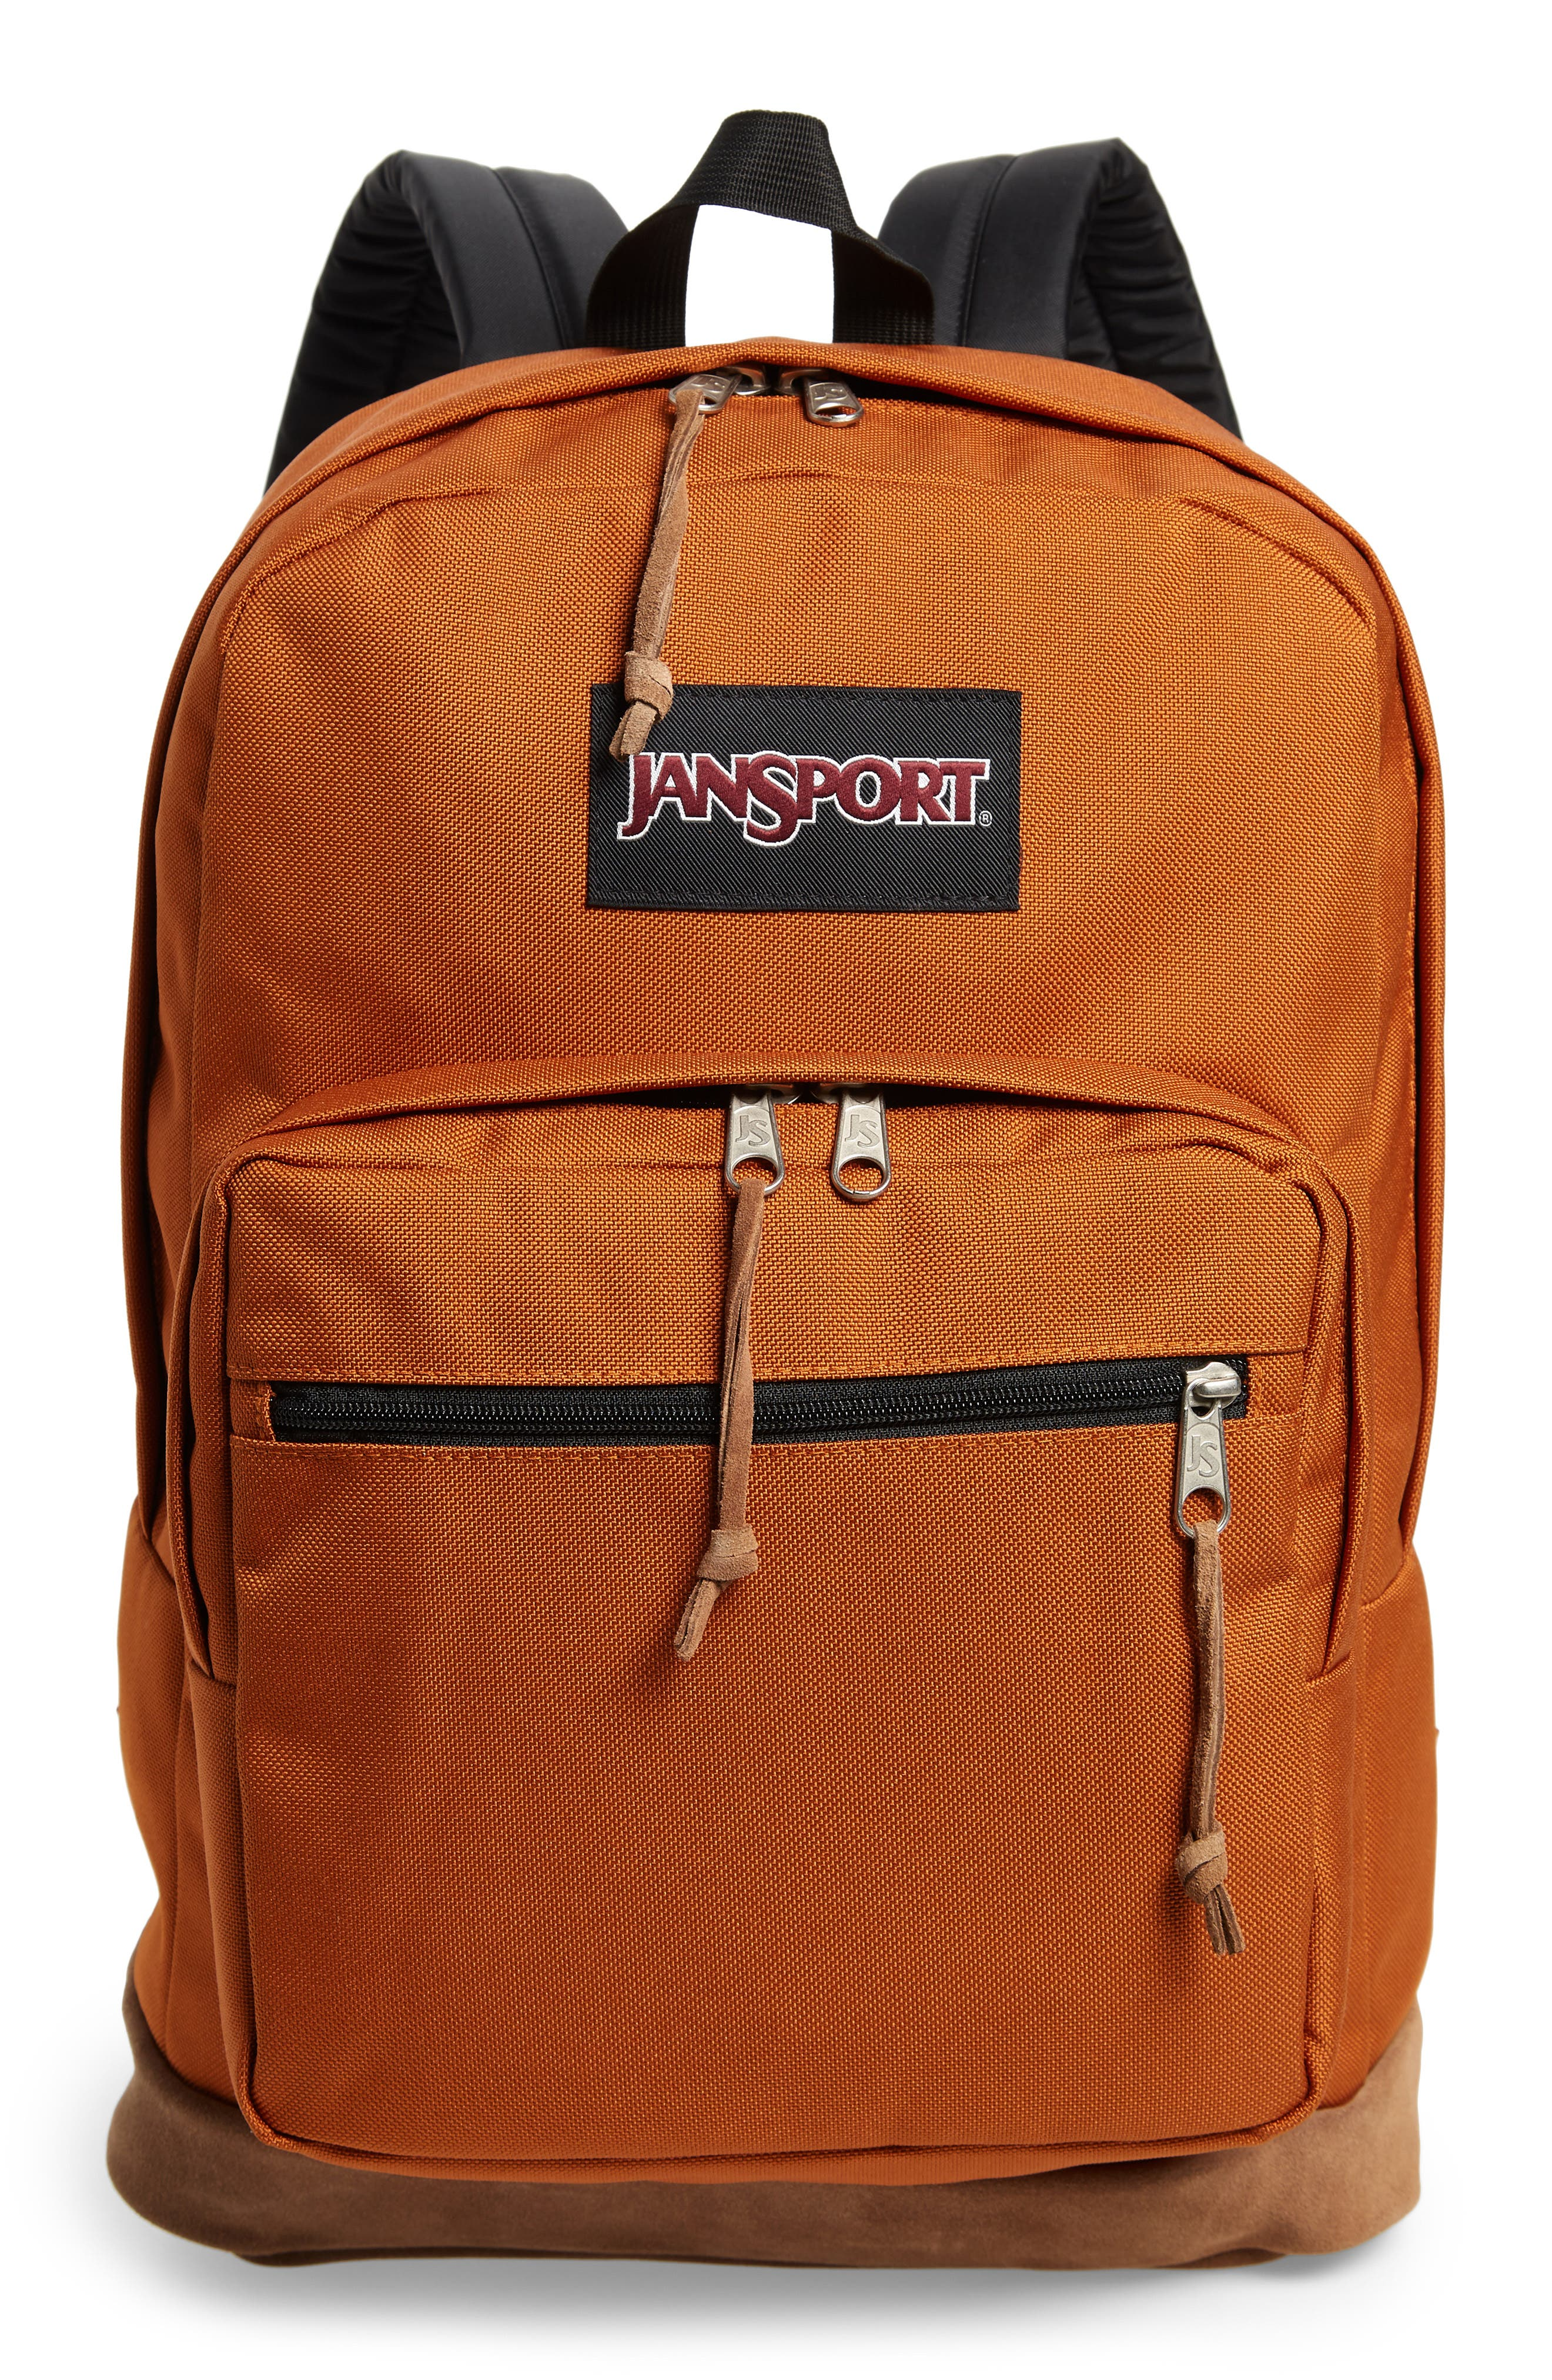 JANSPORT RIGHT PACK BACKPACK - BROWN